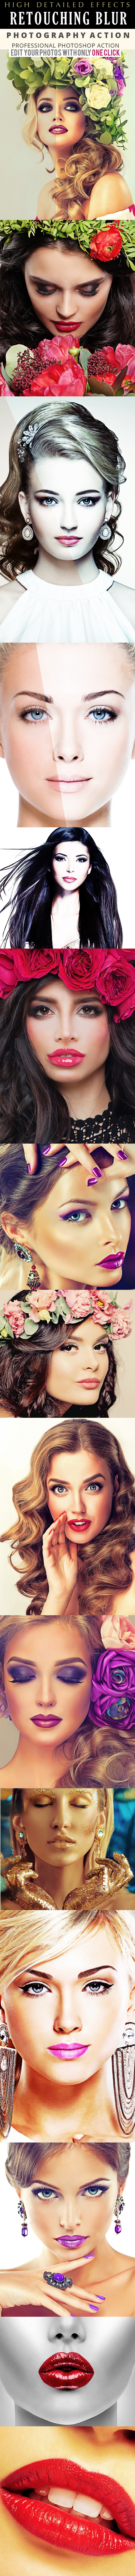 Retouching  Effects Photoshop Action - Photo Effects Actions